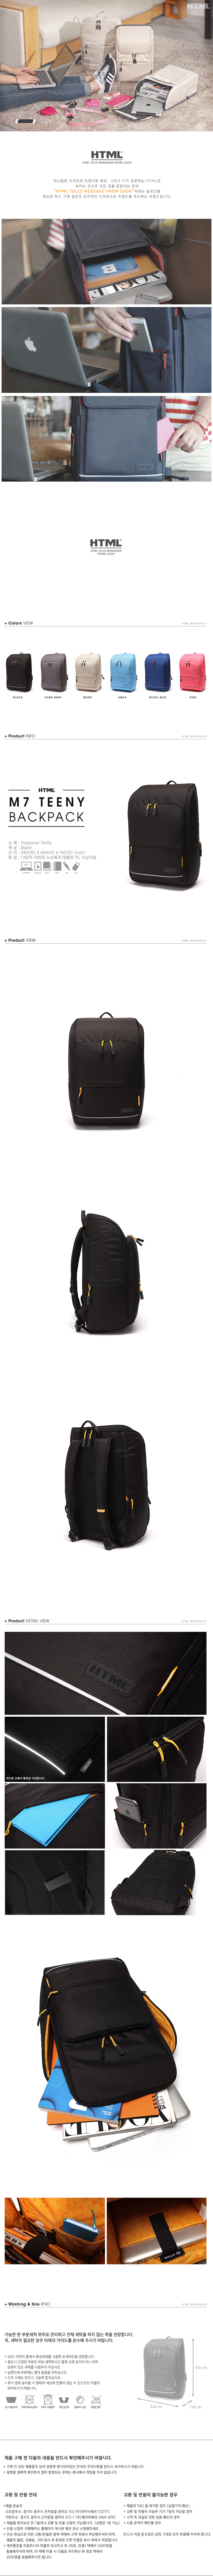 [에이치티엠엘]HTML-M7 WOMAN TEENY (2015) Backpack (BLACK) 티니 백팩